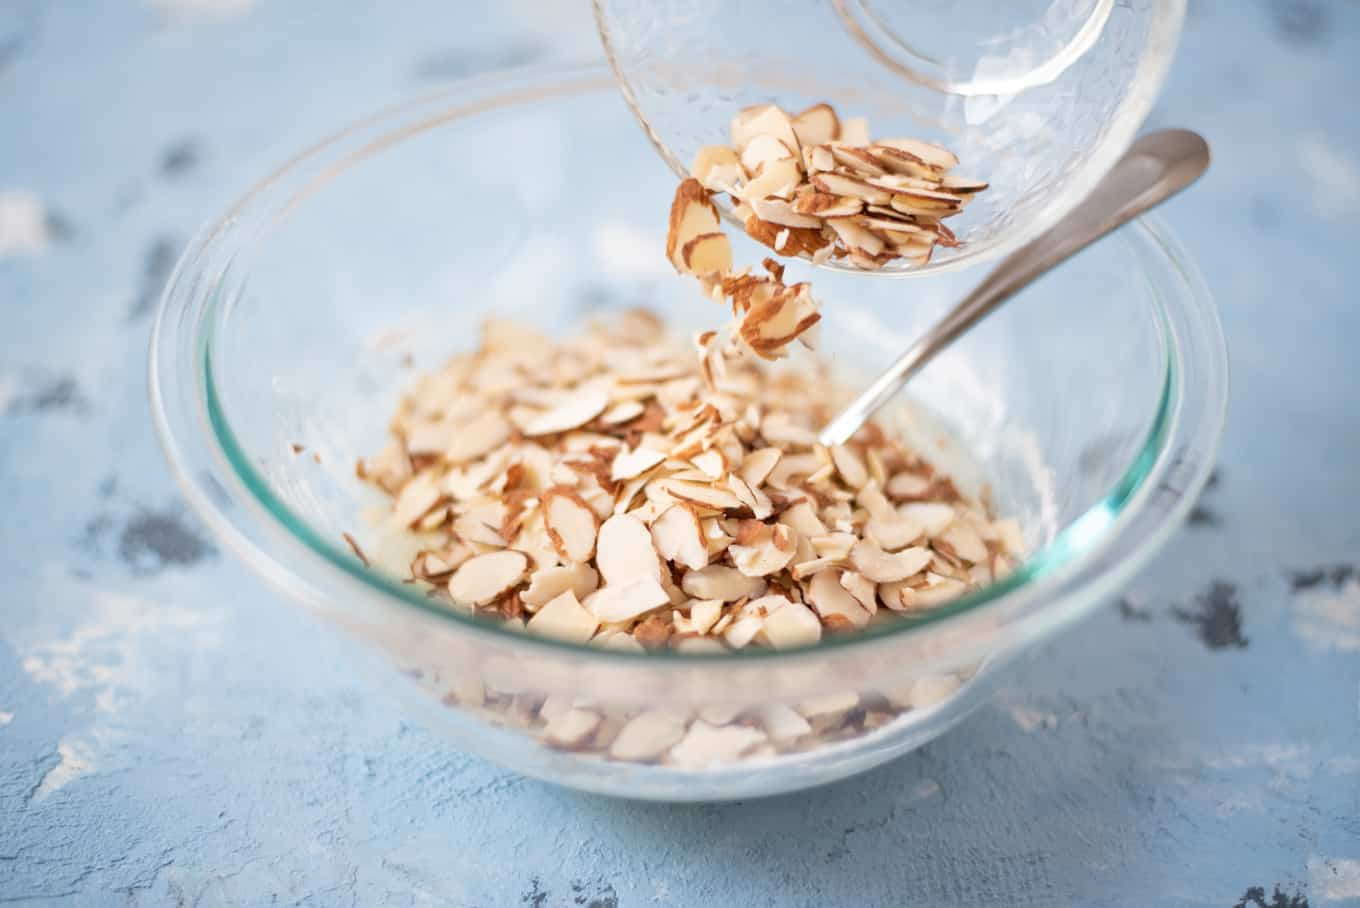 Sliced almonds being poured into a bowl.